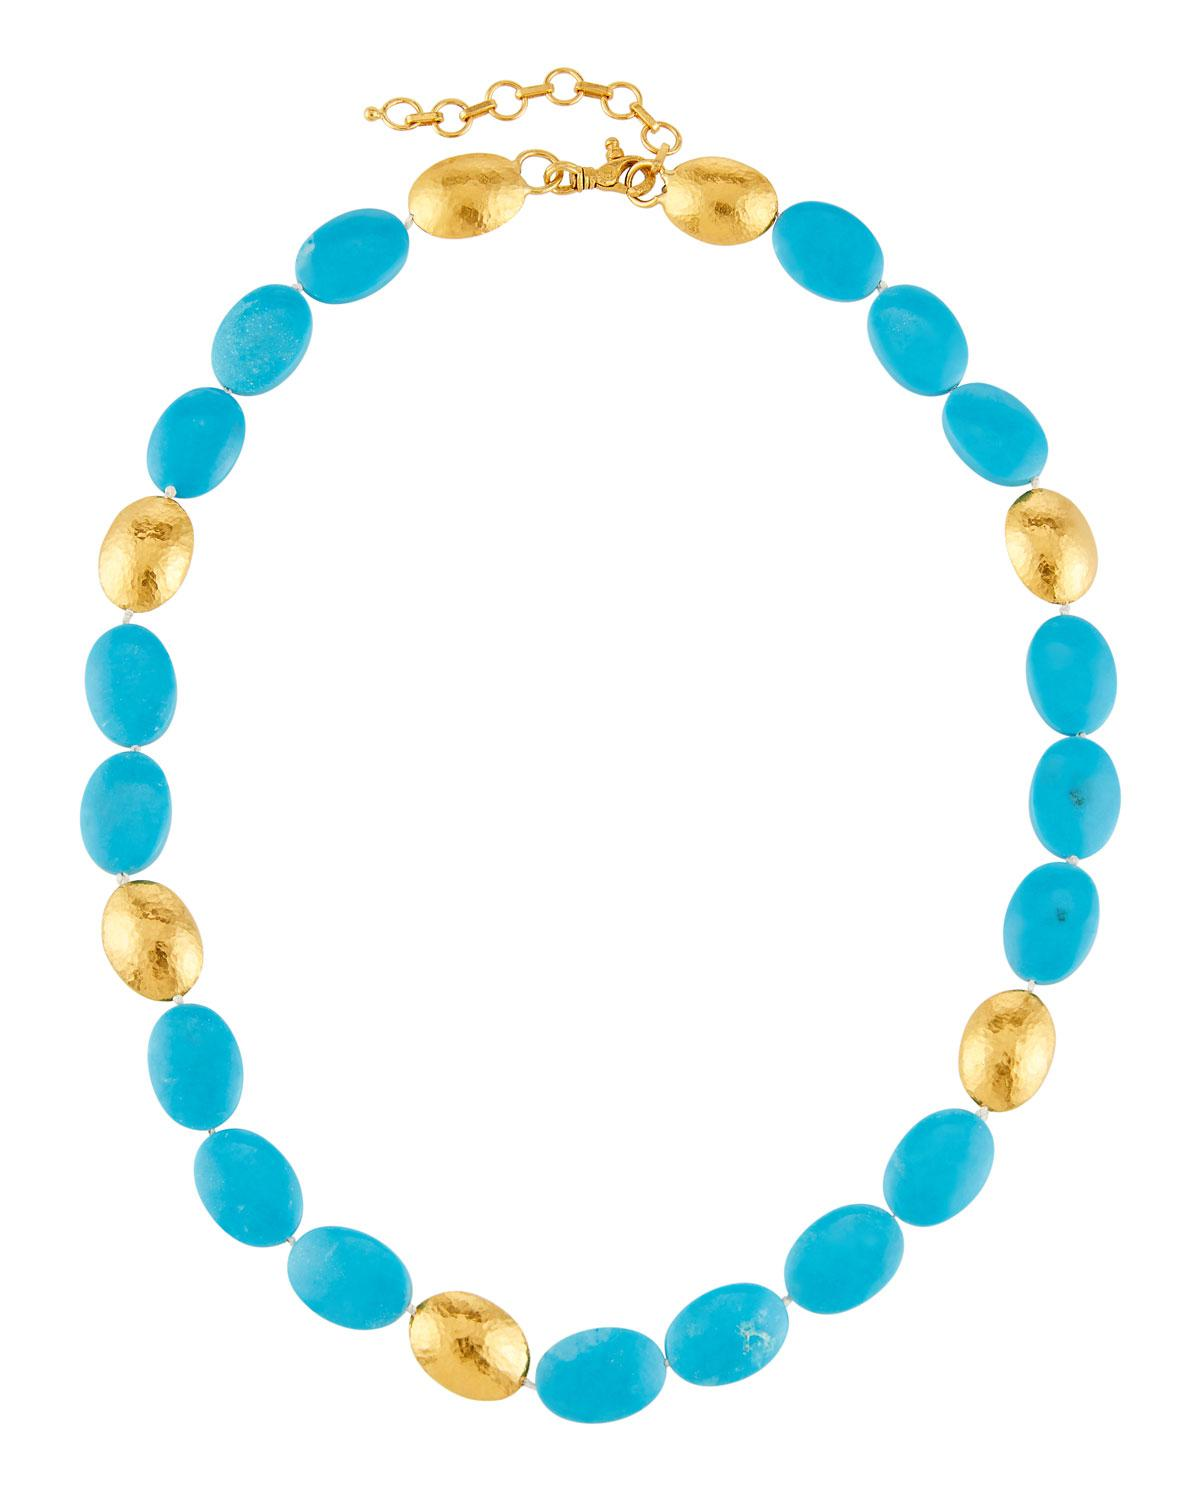 Gurhan 24k Waterfall Turquoise Necklace Qv2Mw76oA6